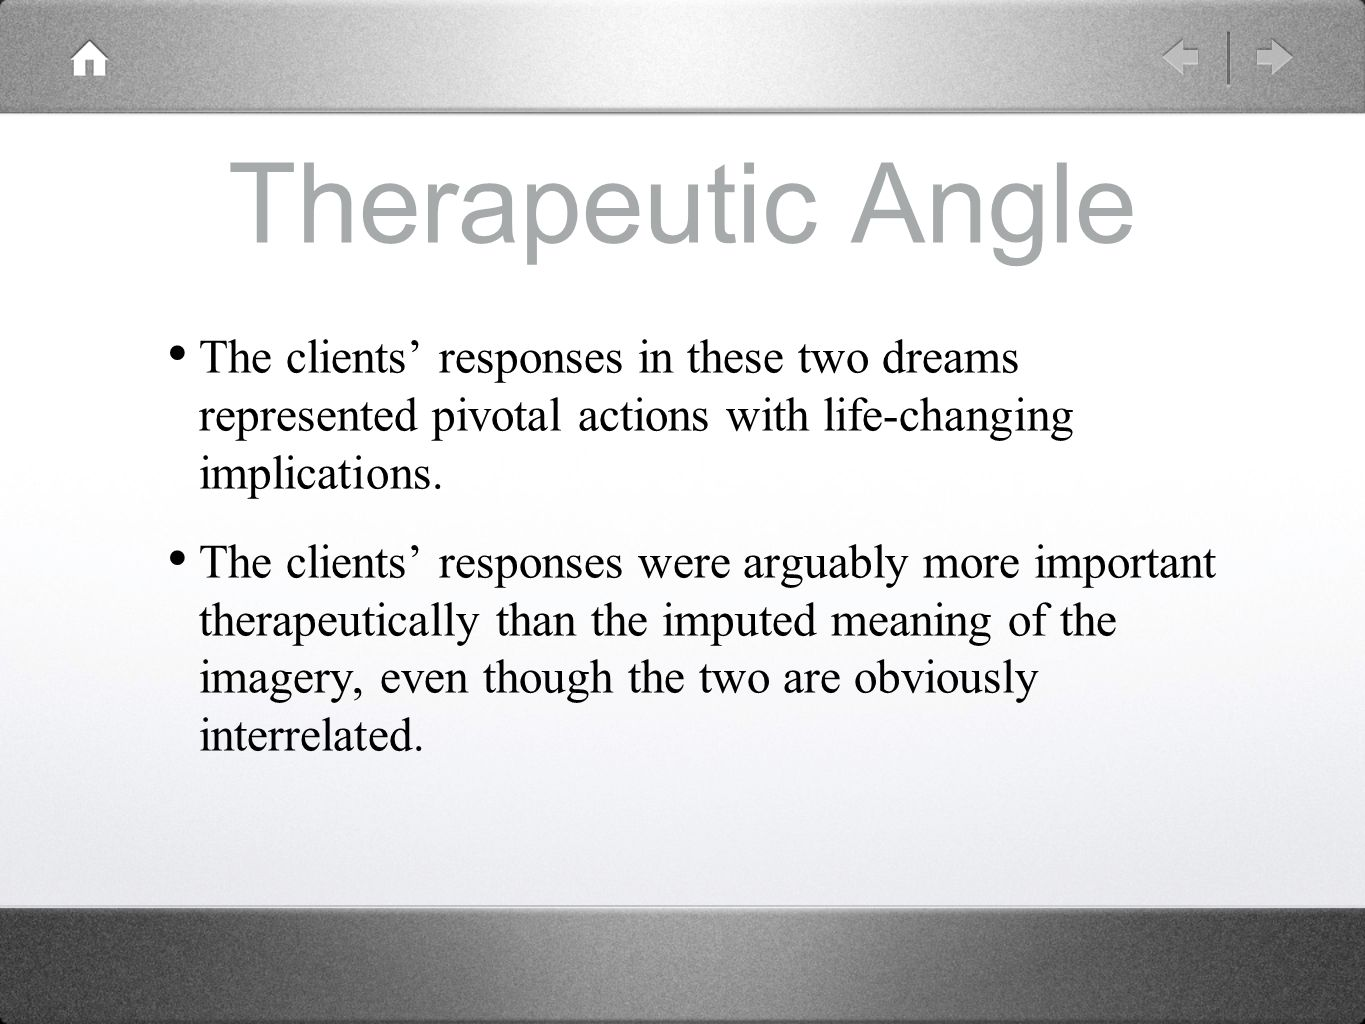 Therapeutic Angle The clients' responses in these two dreams represented pivotal actions with life-changing implications.